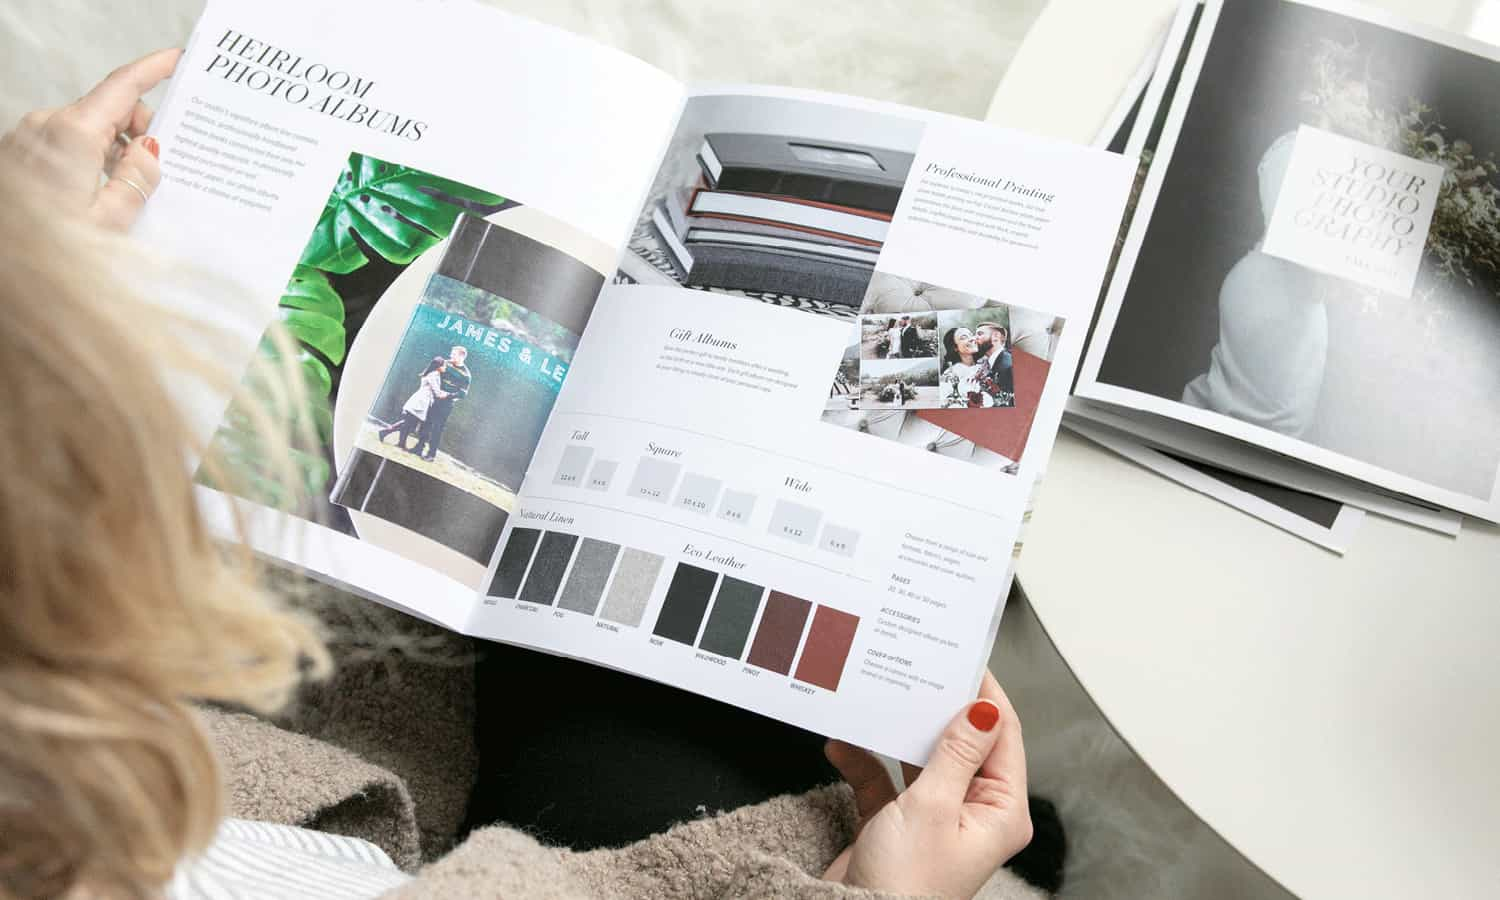 Lookbooks are some of Design Aglow's most popular photography marketing templates